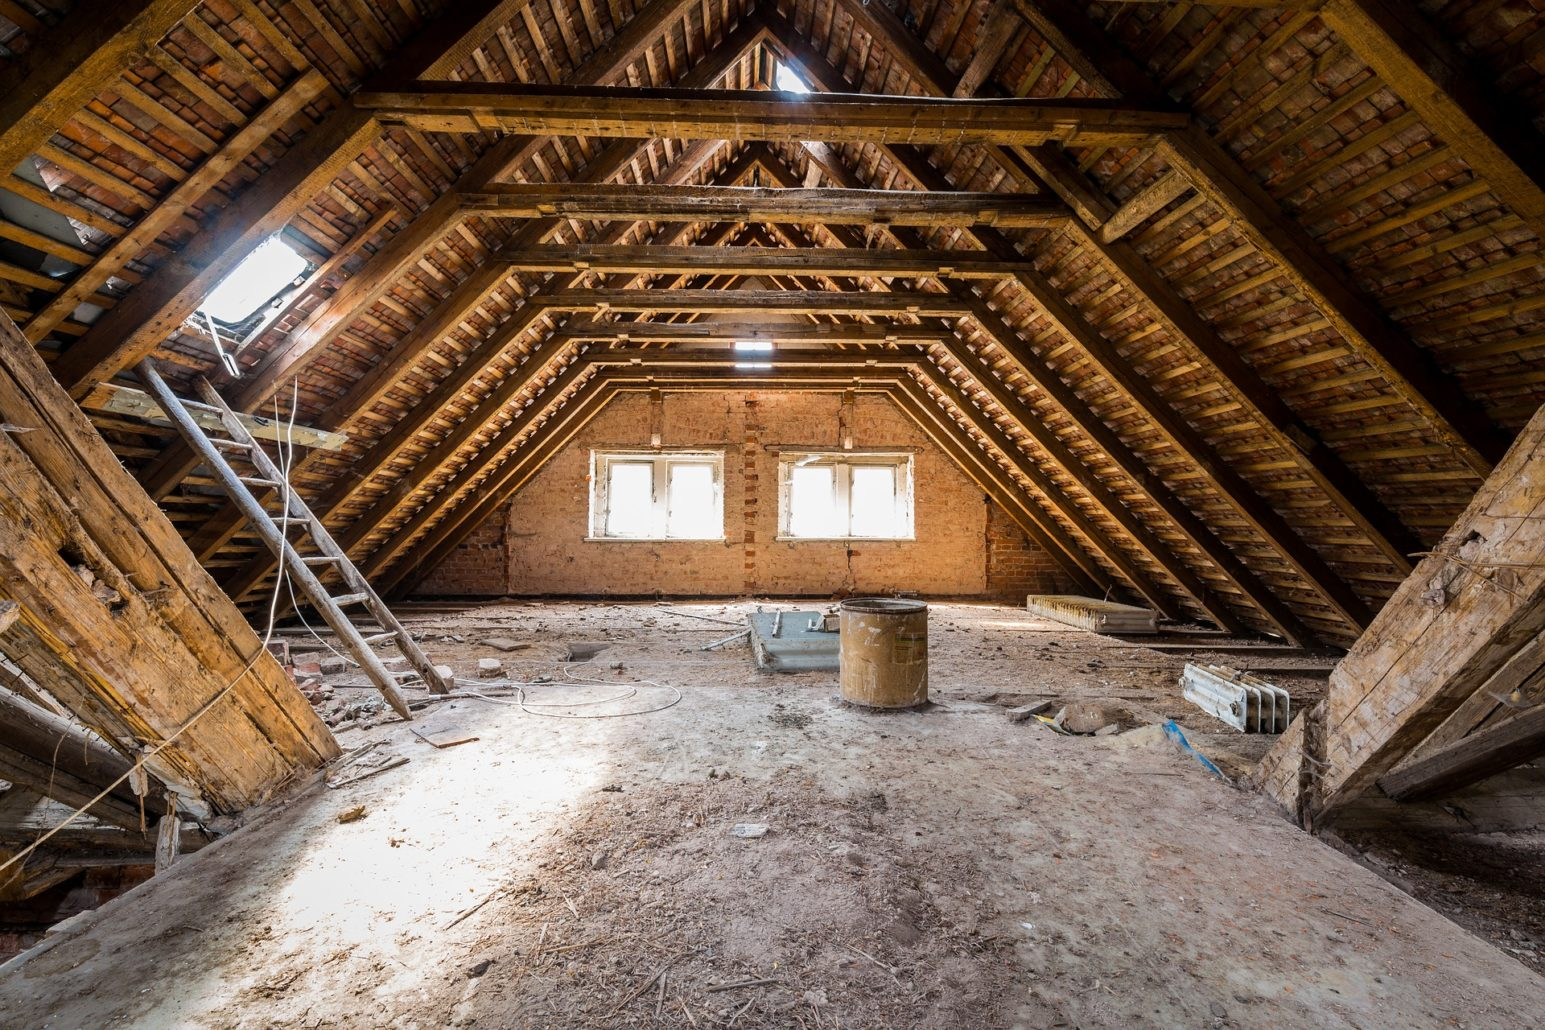 There is an infinite number of loft conversion ideas-what would you do with all that empty space?